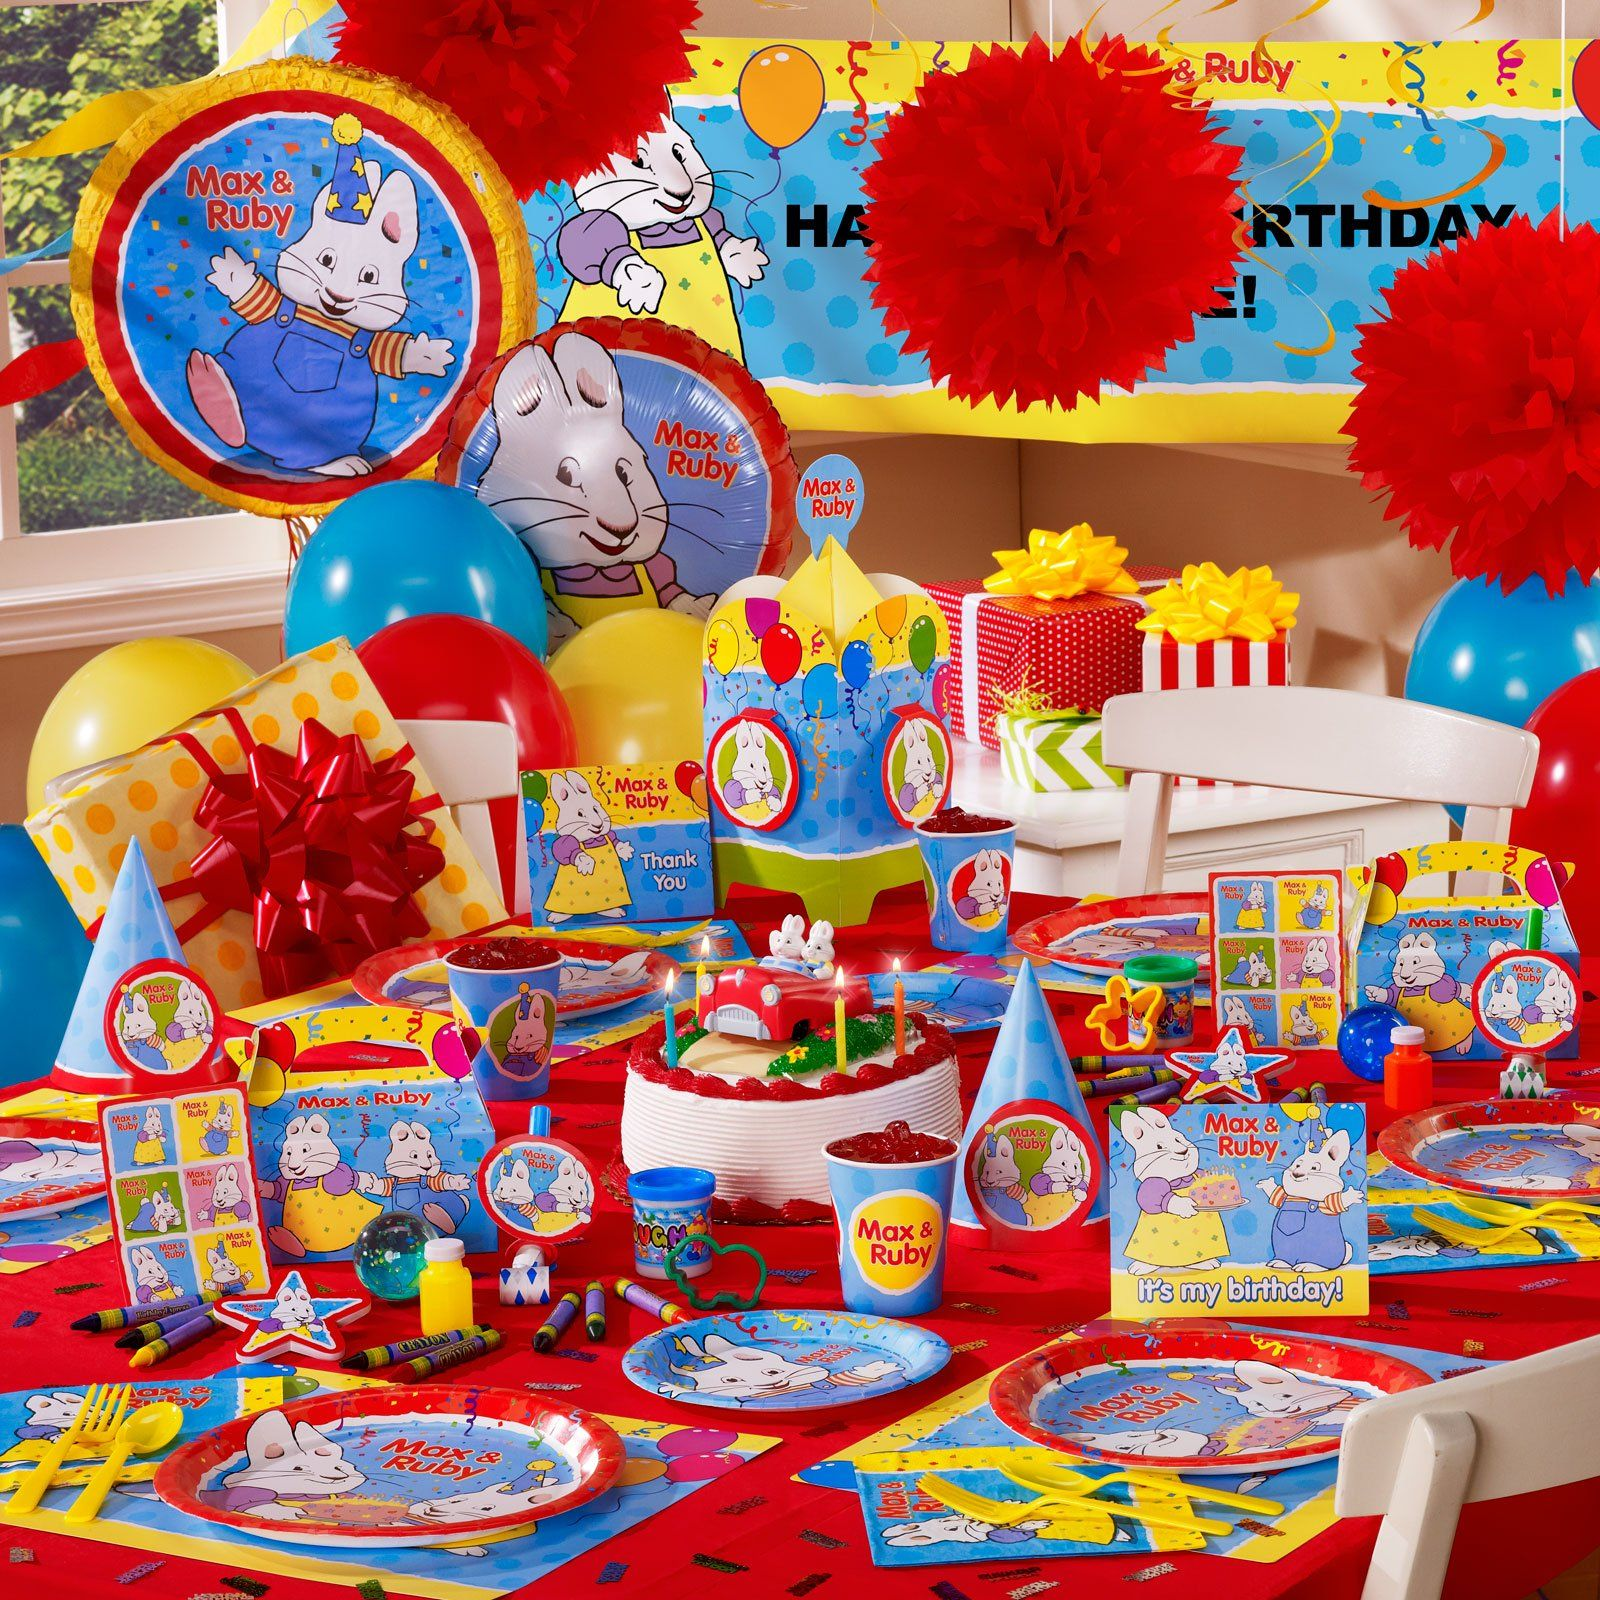 Max and Ruby Birthday Party | Do It For the Chitlins | Pinterest ...